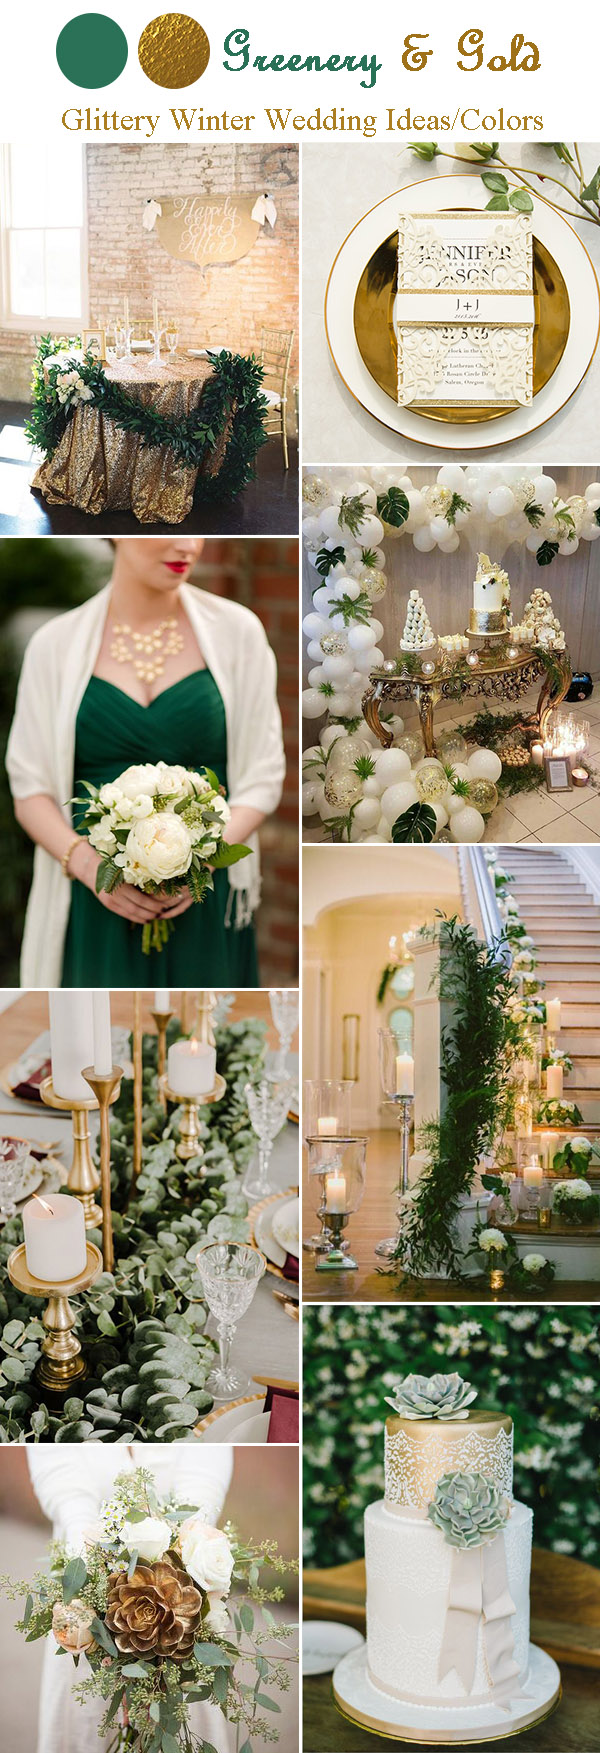 lush greenery and gold winter wedding ideas